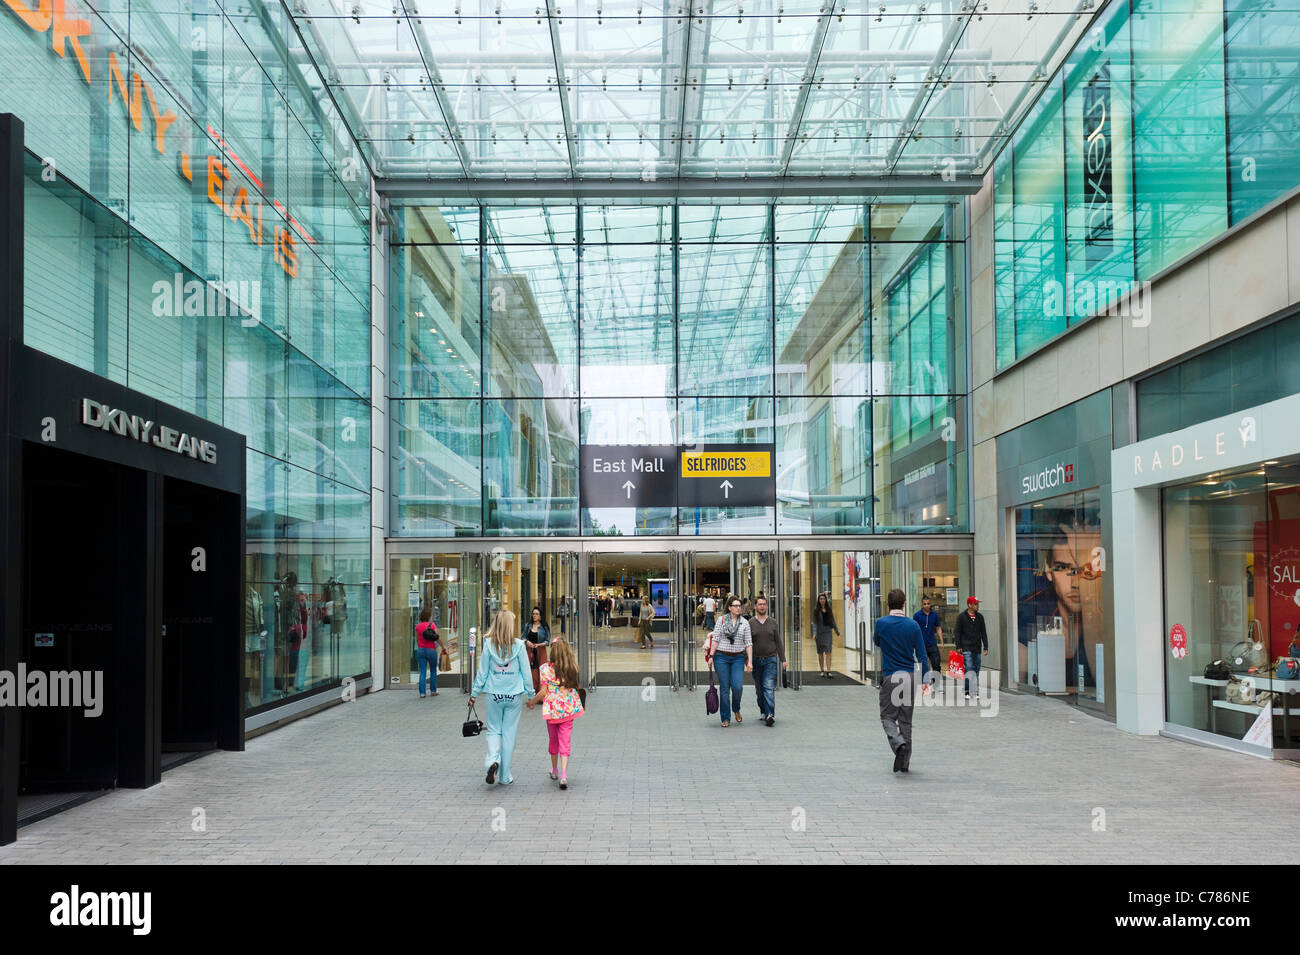 Entrance to the East Mall of the  Bull Ring Shopping Centre, Birmingham, West Midlands, England, UK - Stock Image